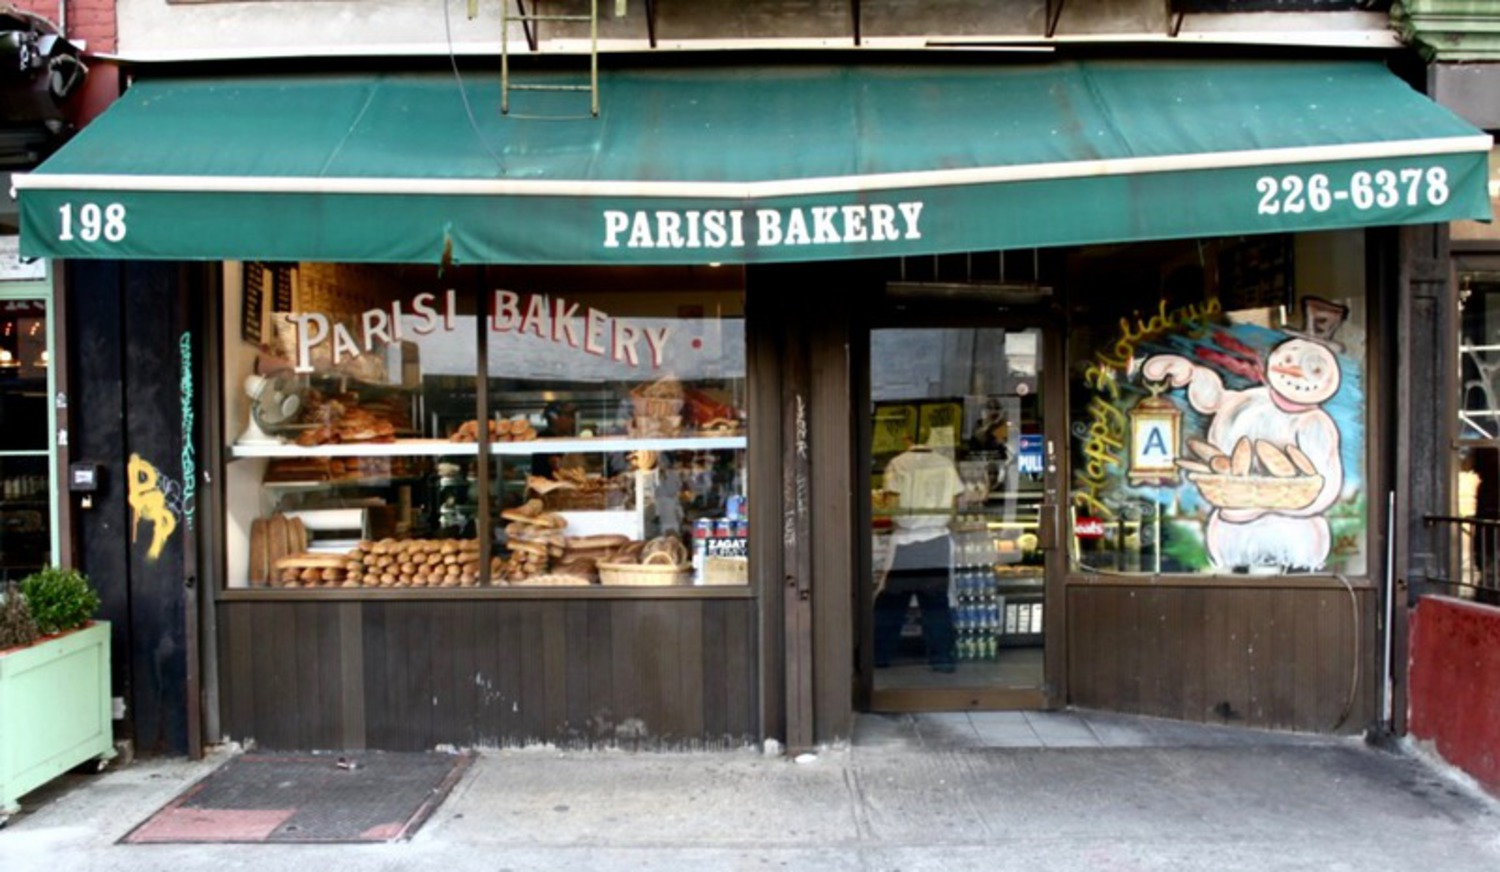 Parisi Bakery in Little Italy